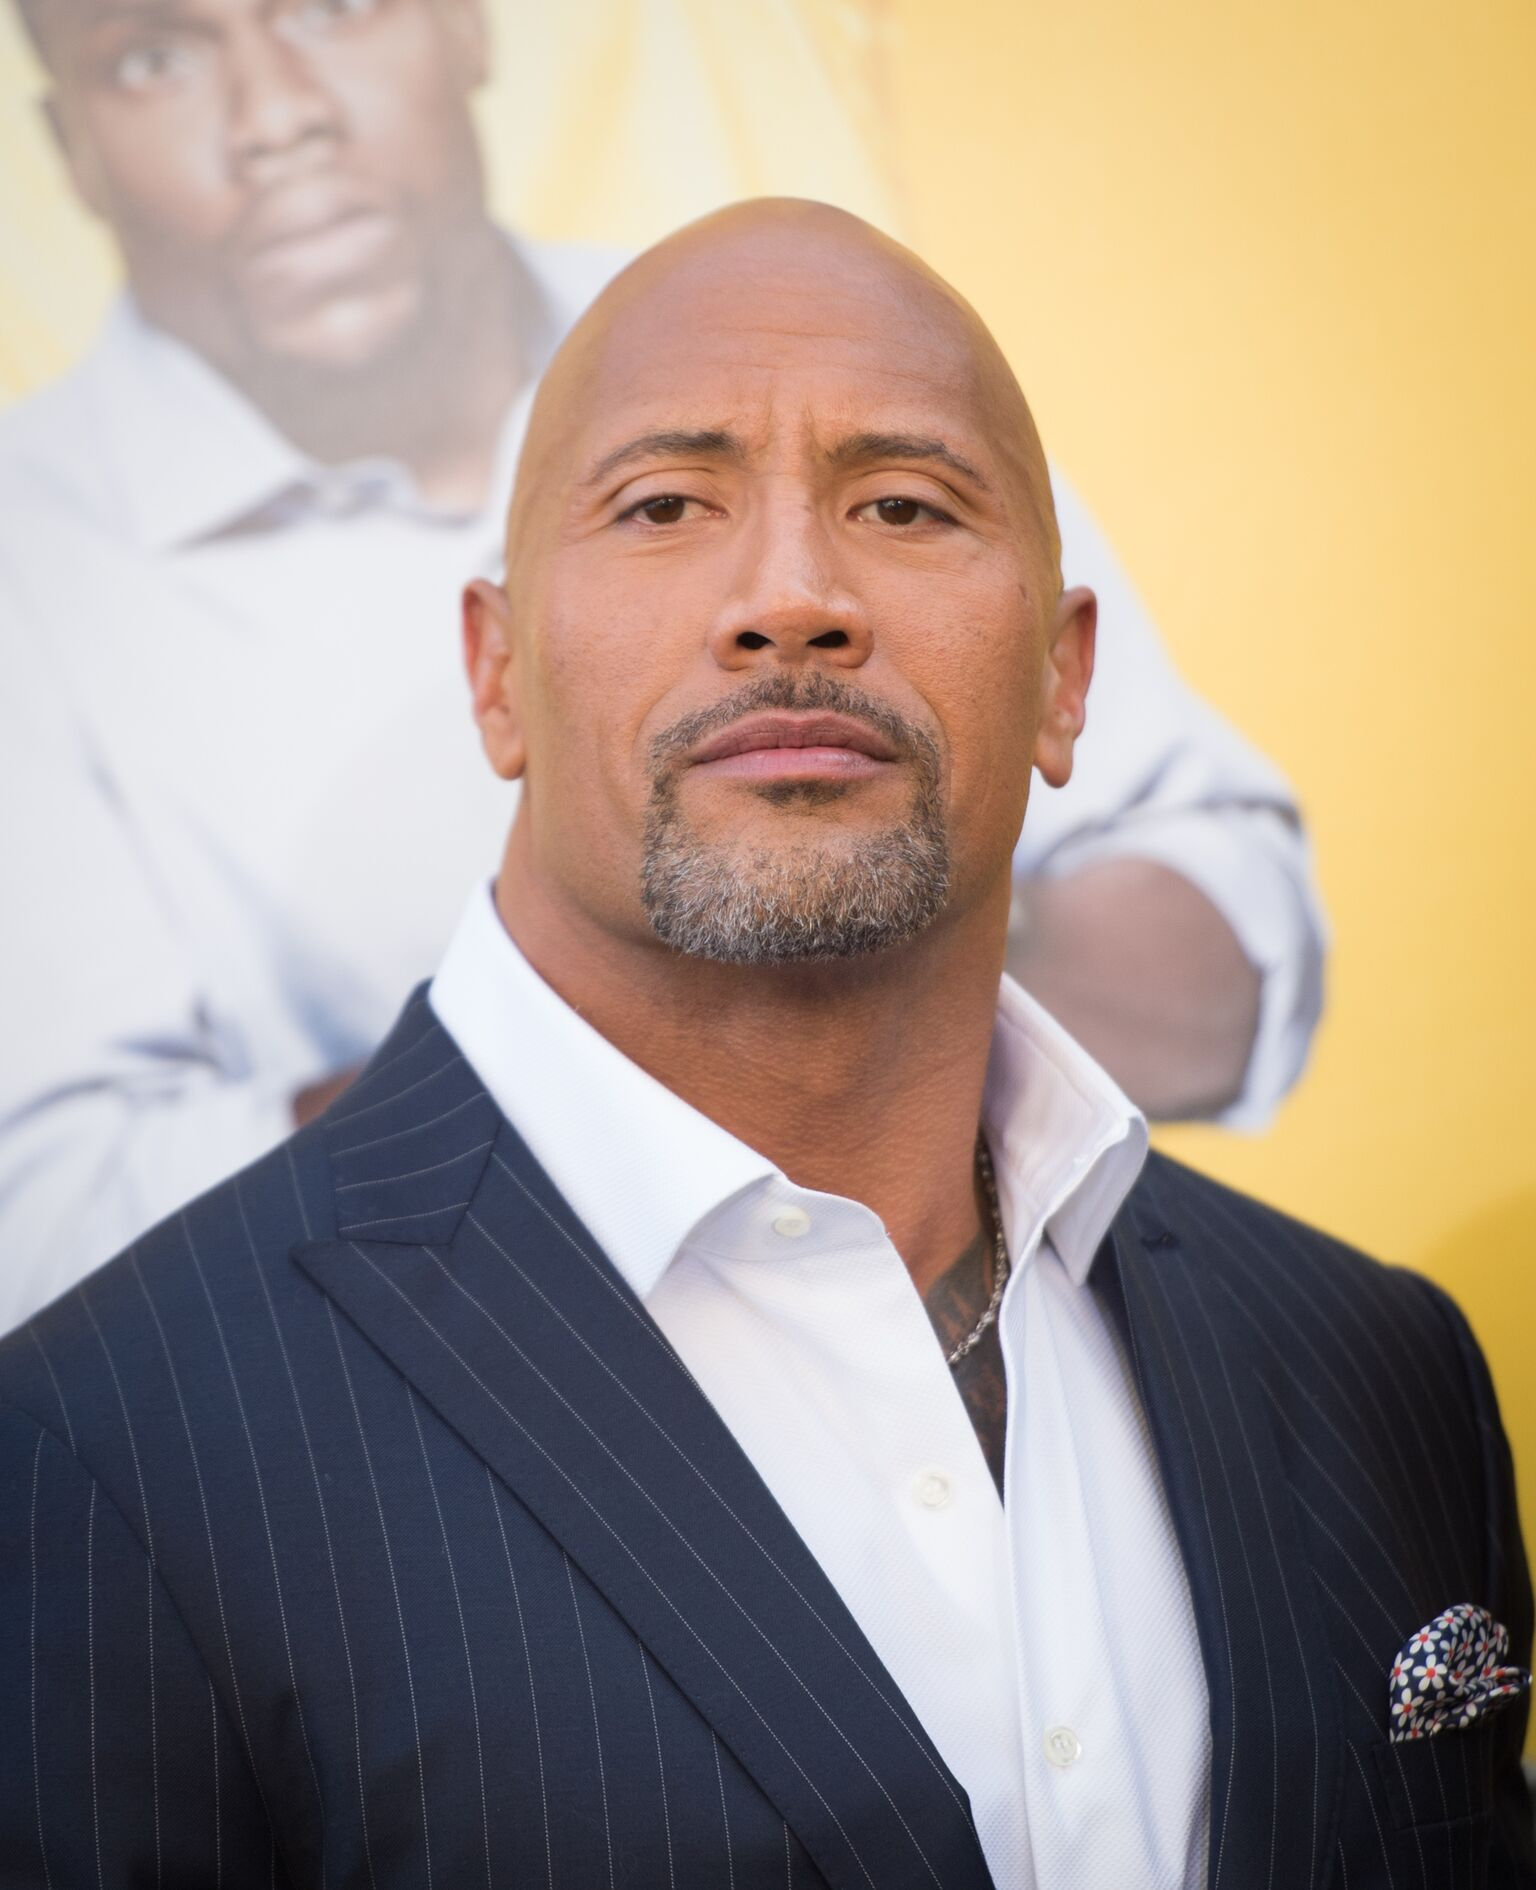 """Actor Dwayne Johnson attends the premiere of Warner Bros. Pictures' """"Central Intelligence"""" at Westwood Village Theatre 